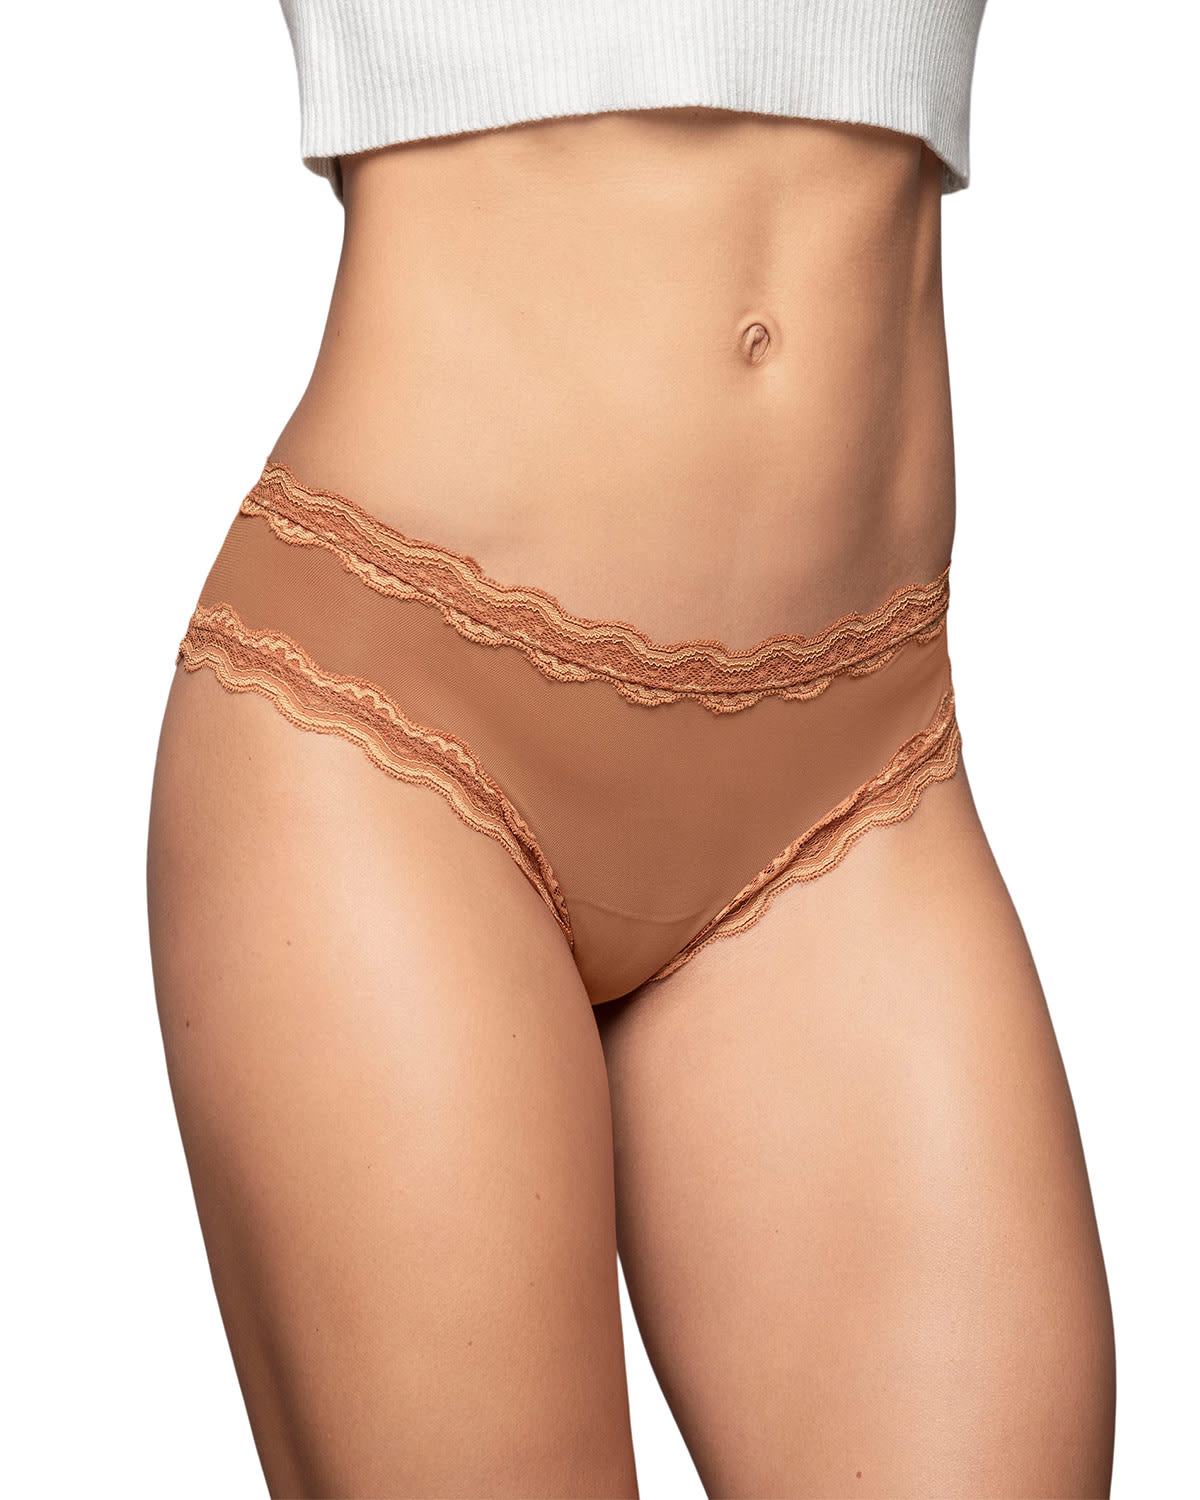 Super Soft Cheeky Panty with Delicate Lace Trim